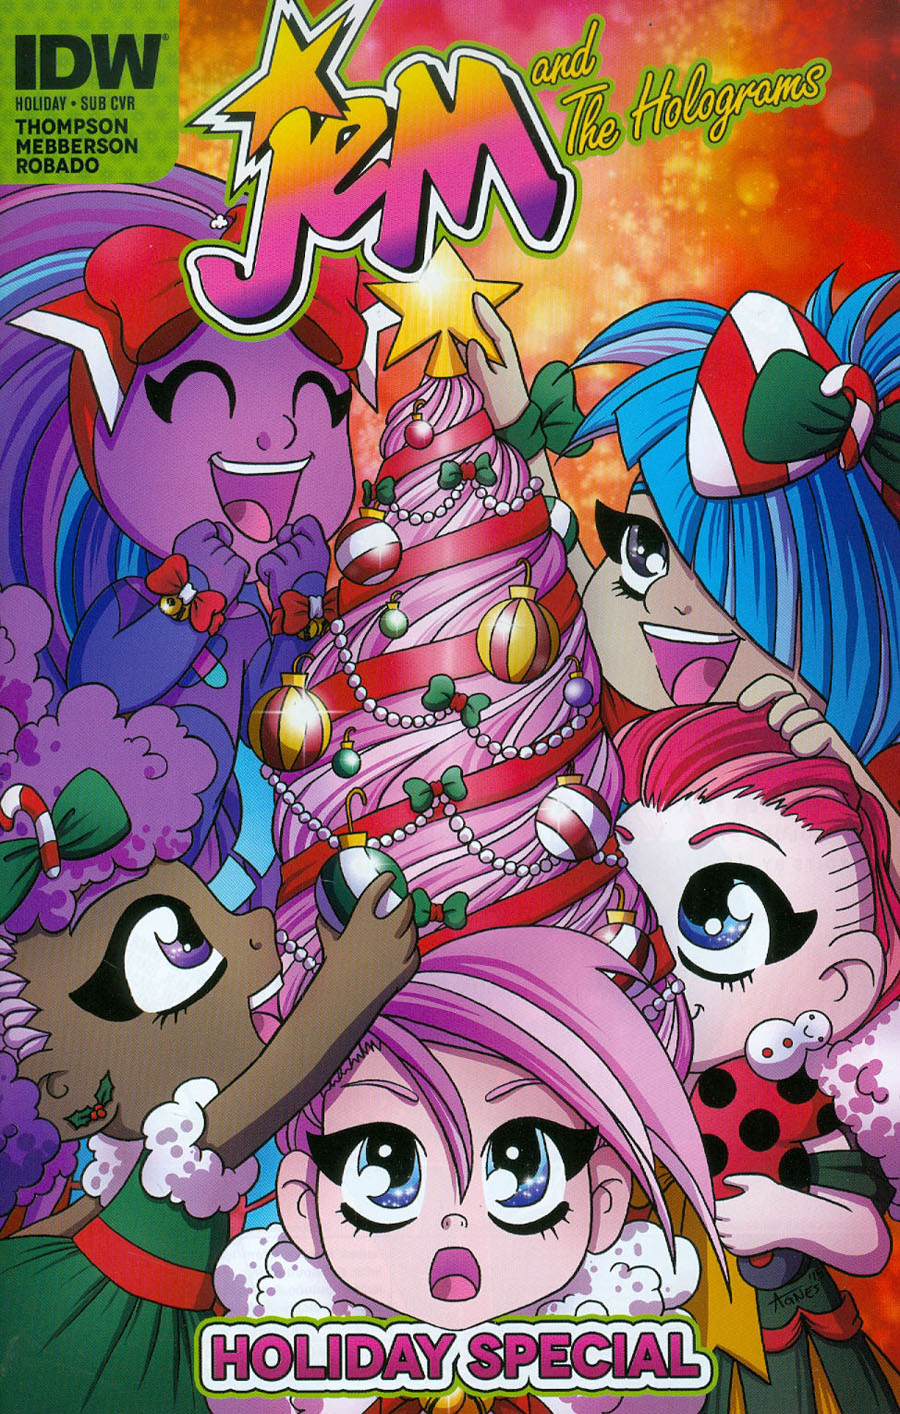 Jem And The Holograms Holiday Special Cover B Variant Agnes Garbowska Subscription Cover